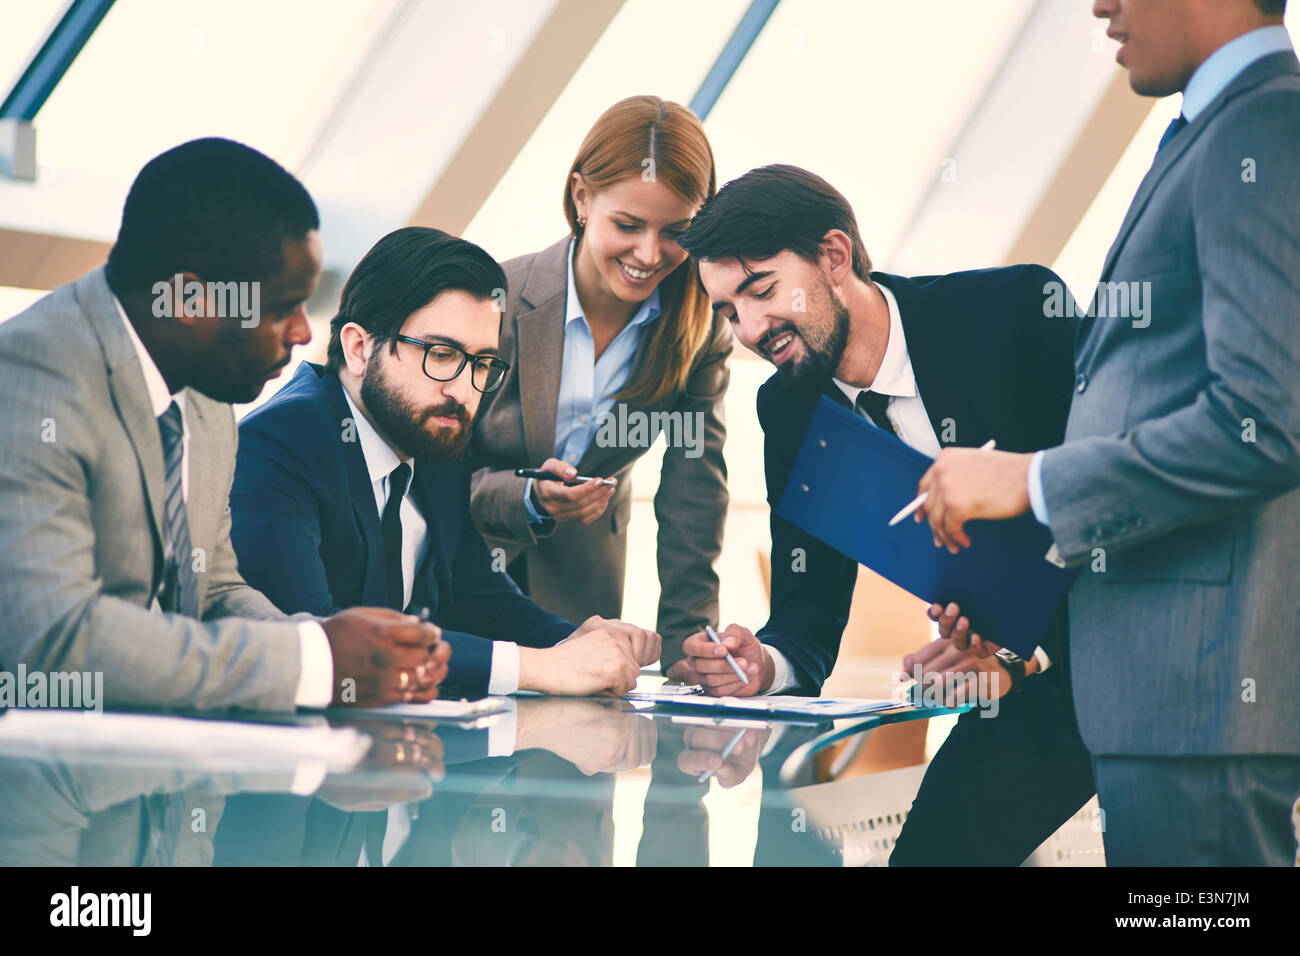 Group of business people discussing data or explaining ideas at meeting - Stock Image